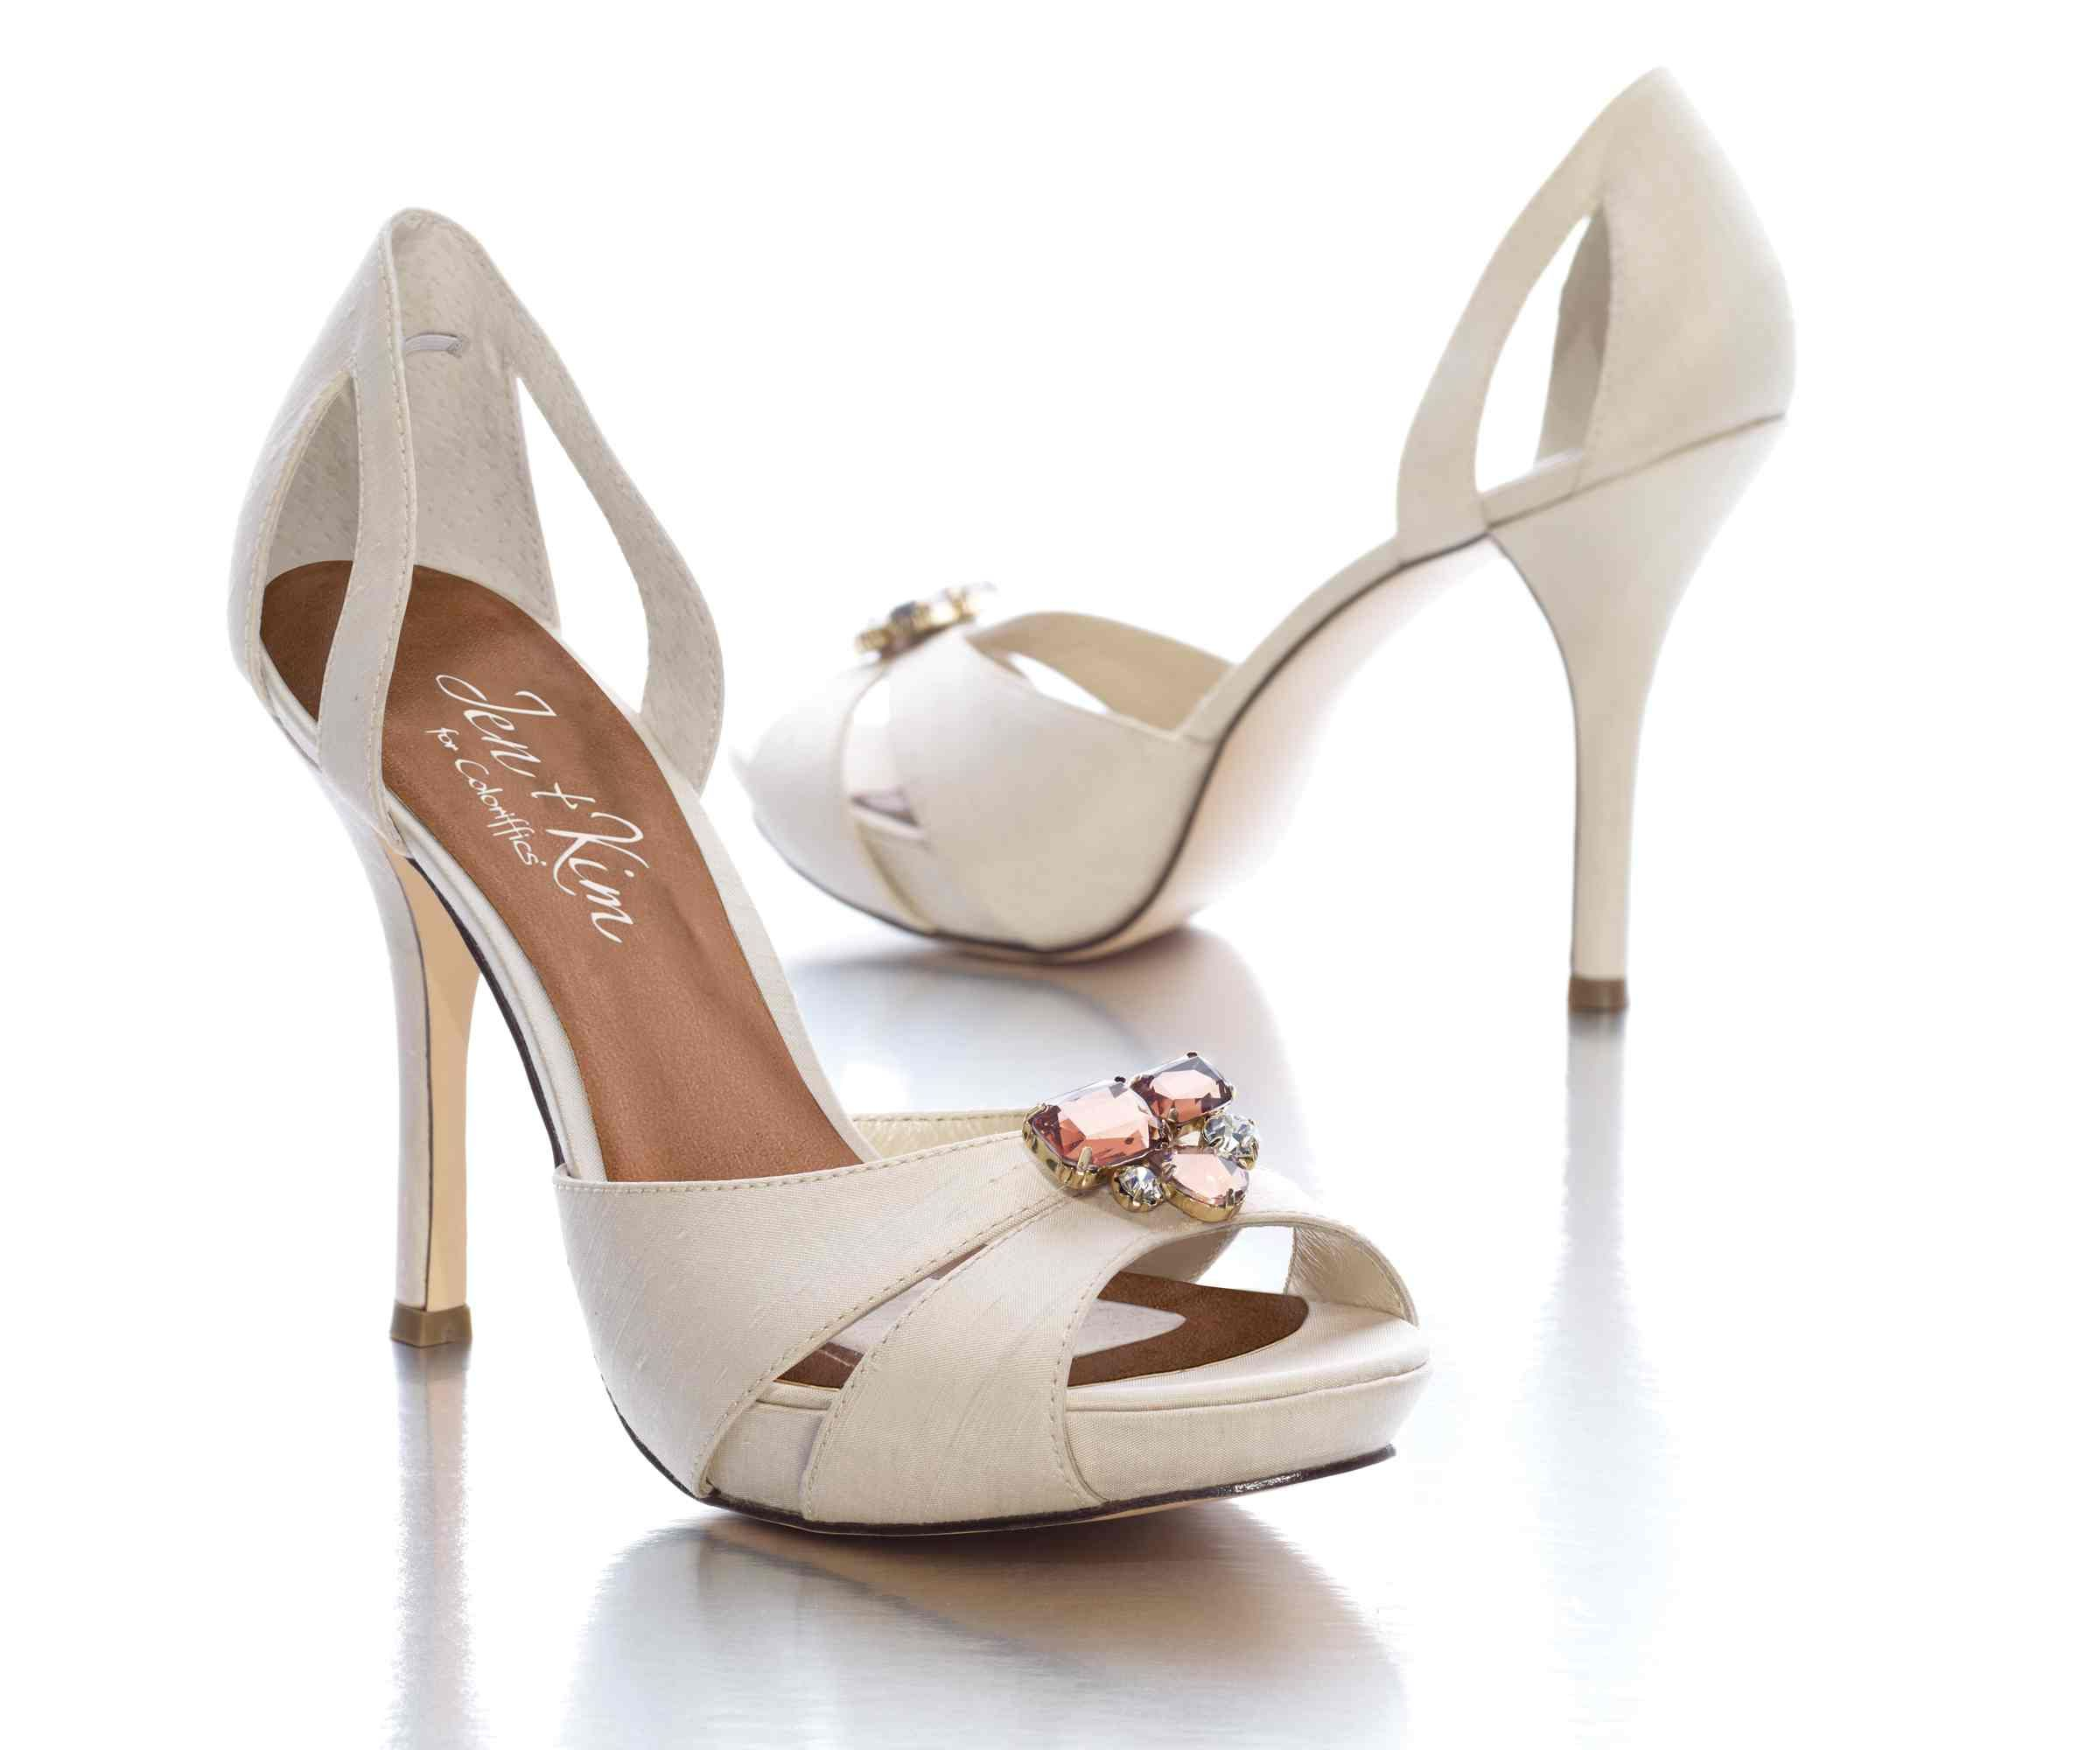 Ivory Cream Colored Show Toe Sandal Heels With Rhinestone Jewels Shoes For WeddingBridal